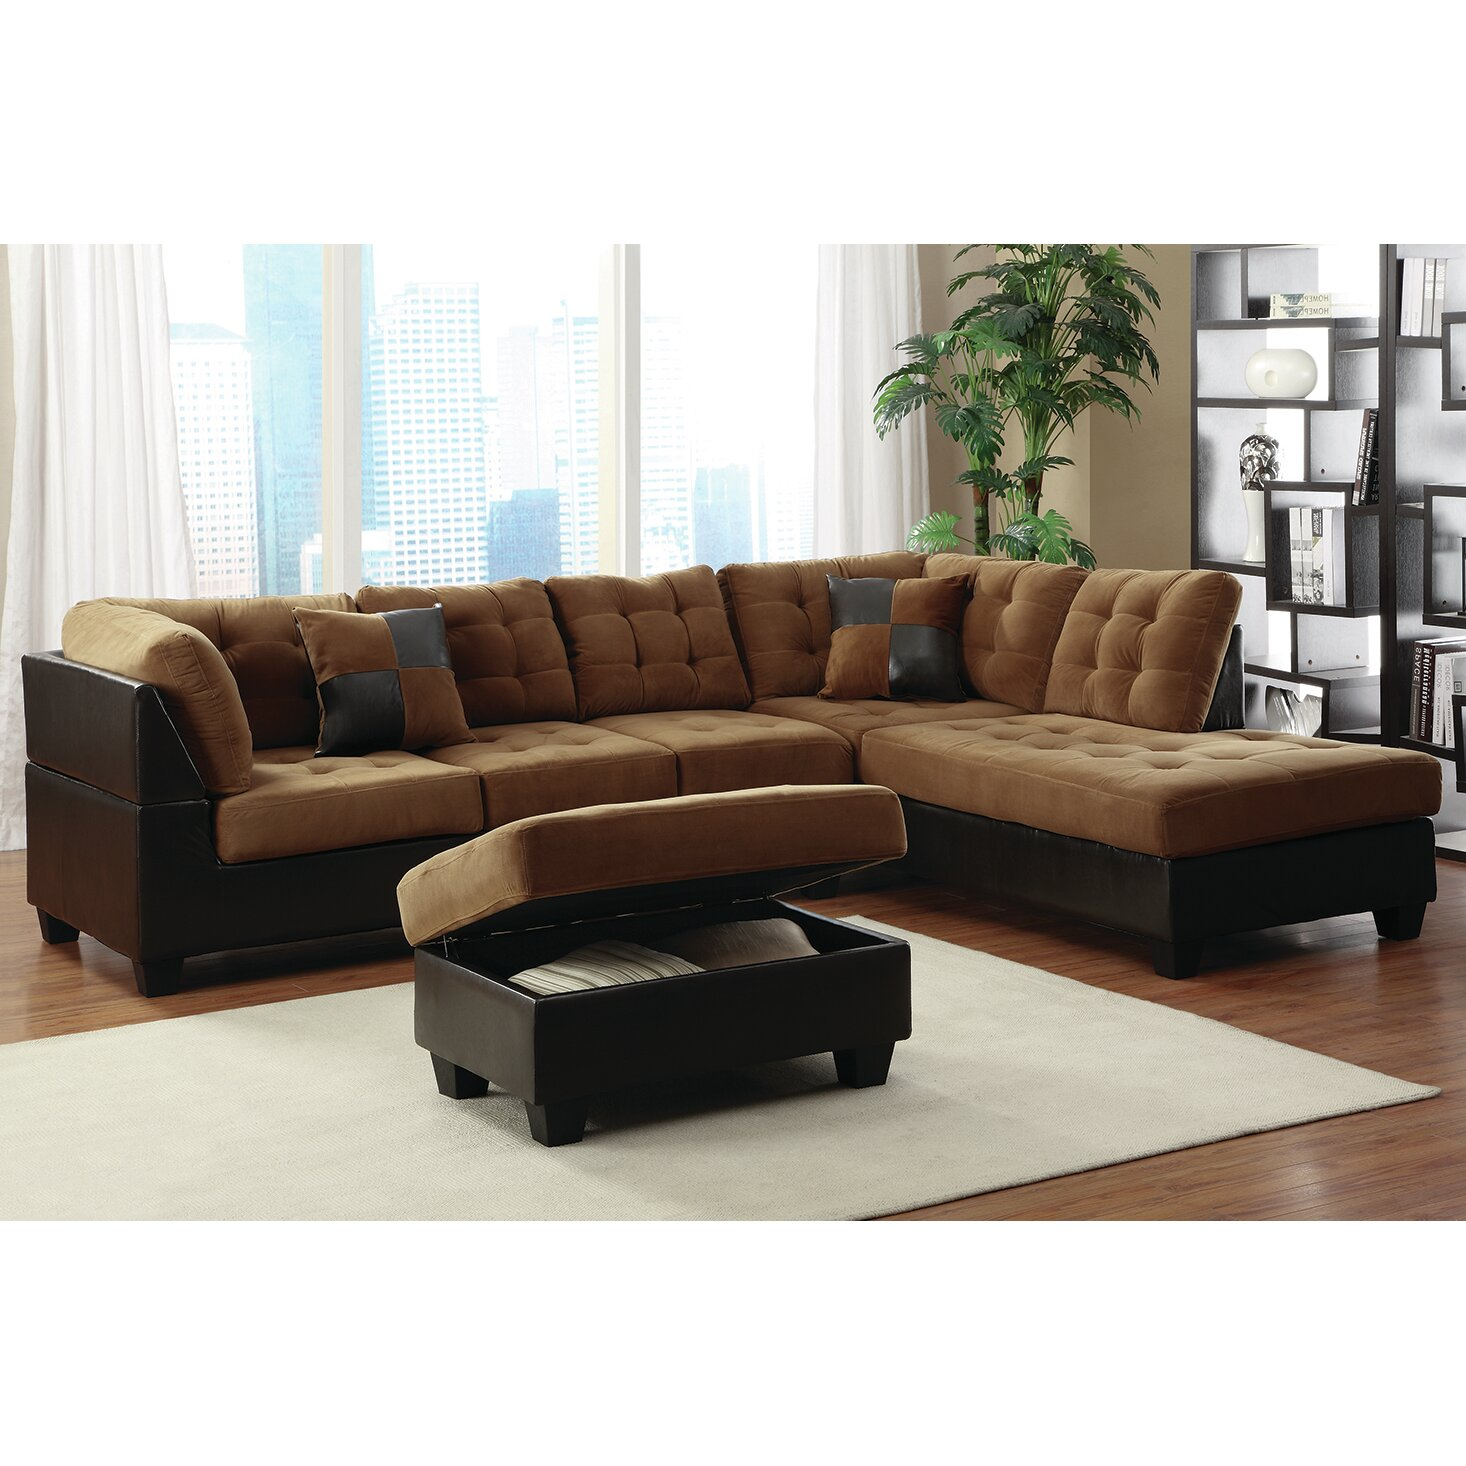 Bestmasterfurniture sectional reviews wayfair for Bartlett caramel left corner chaise sectional